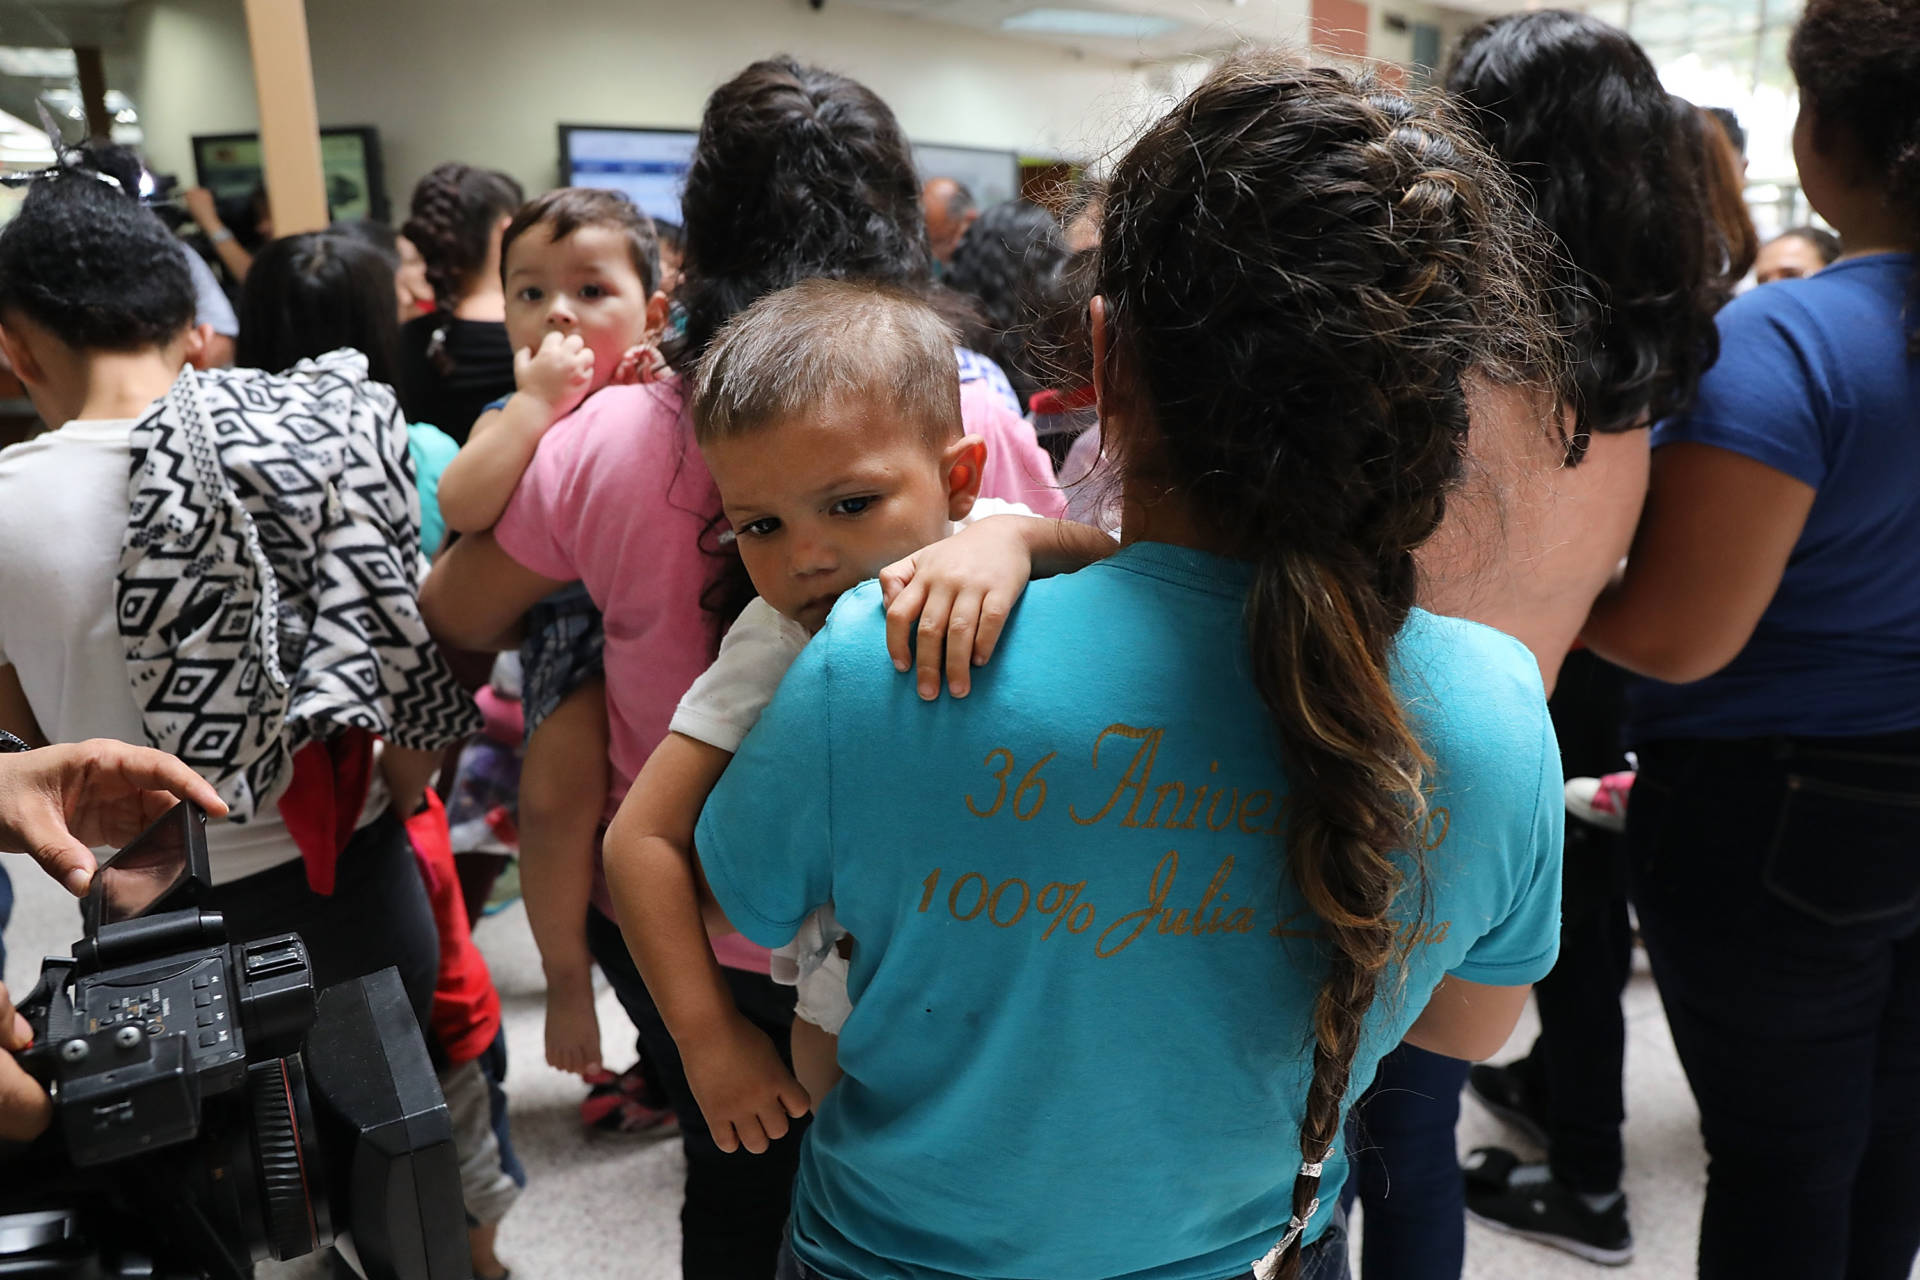 efore President Donald Trump signed an executive order halting the practice of separating families who are seeking asylum, over 2,300 immigrant children had been separated from their parents in the zero-tolerance policy for border crossers. Spencer Platt/Getty Images